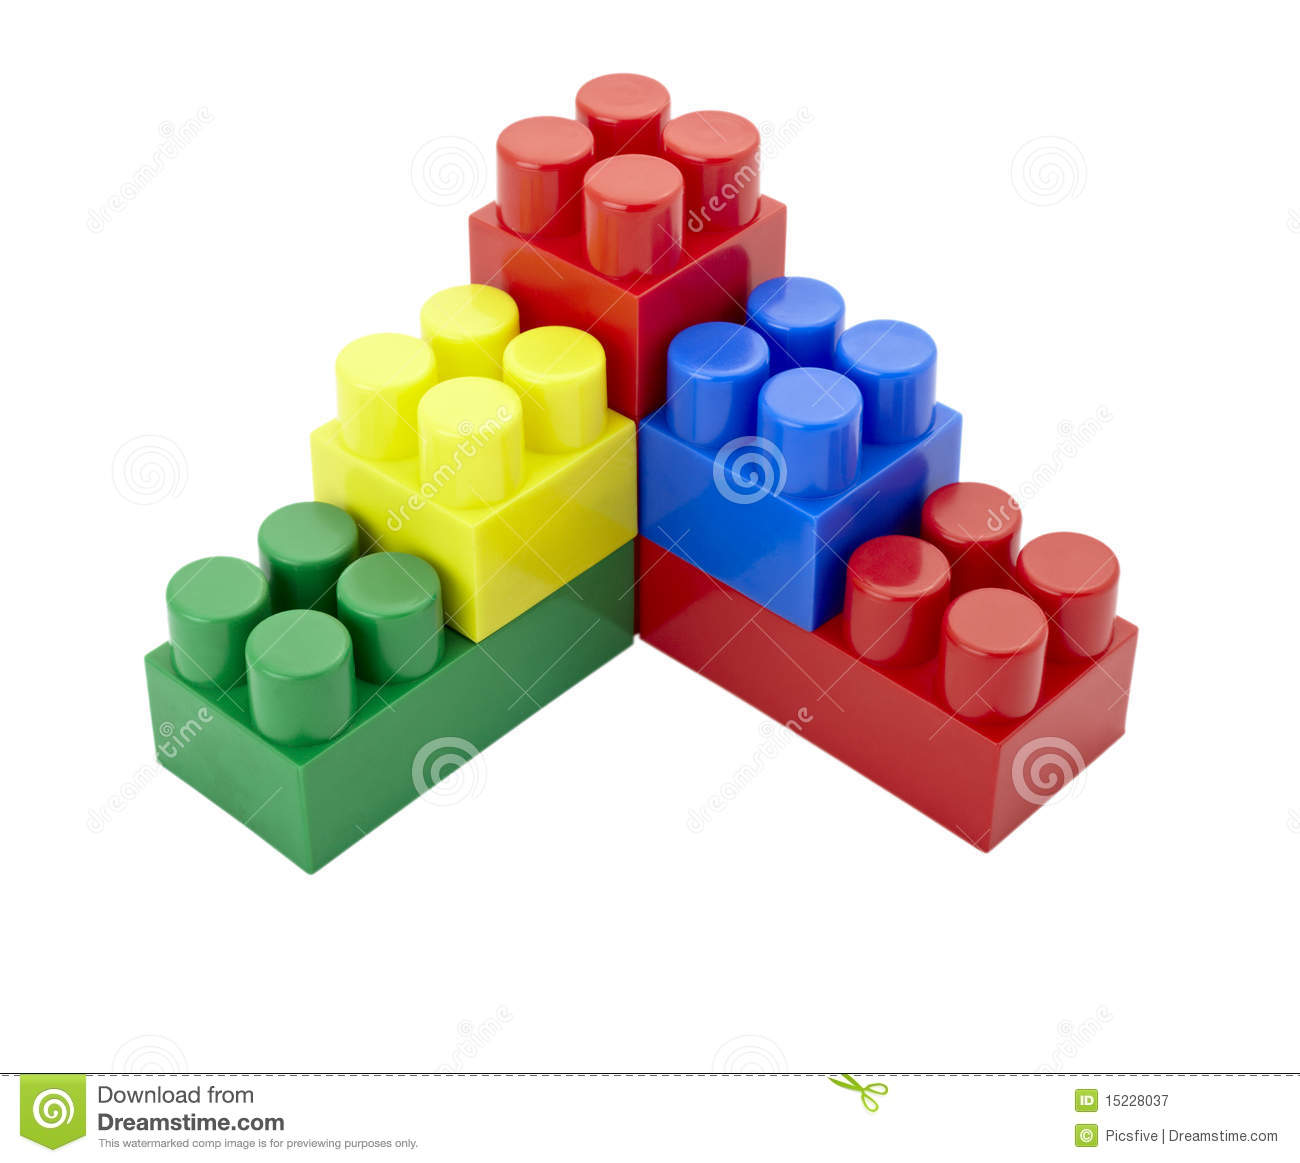 Toy Lego Block Construction Education Childhood Royalty Free Stock.